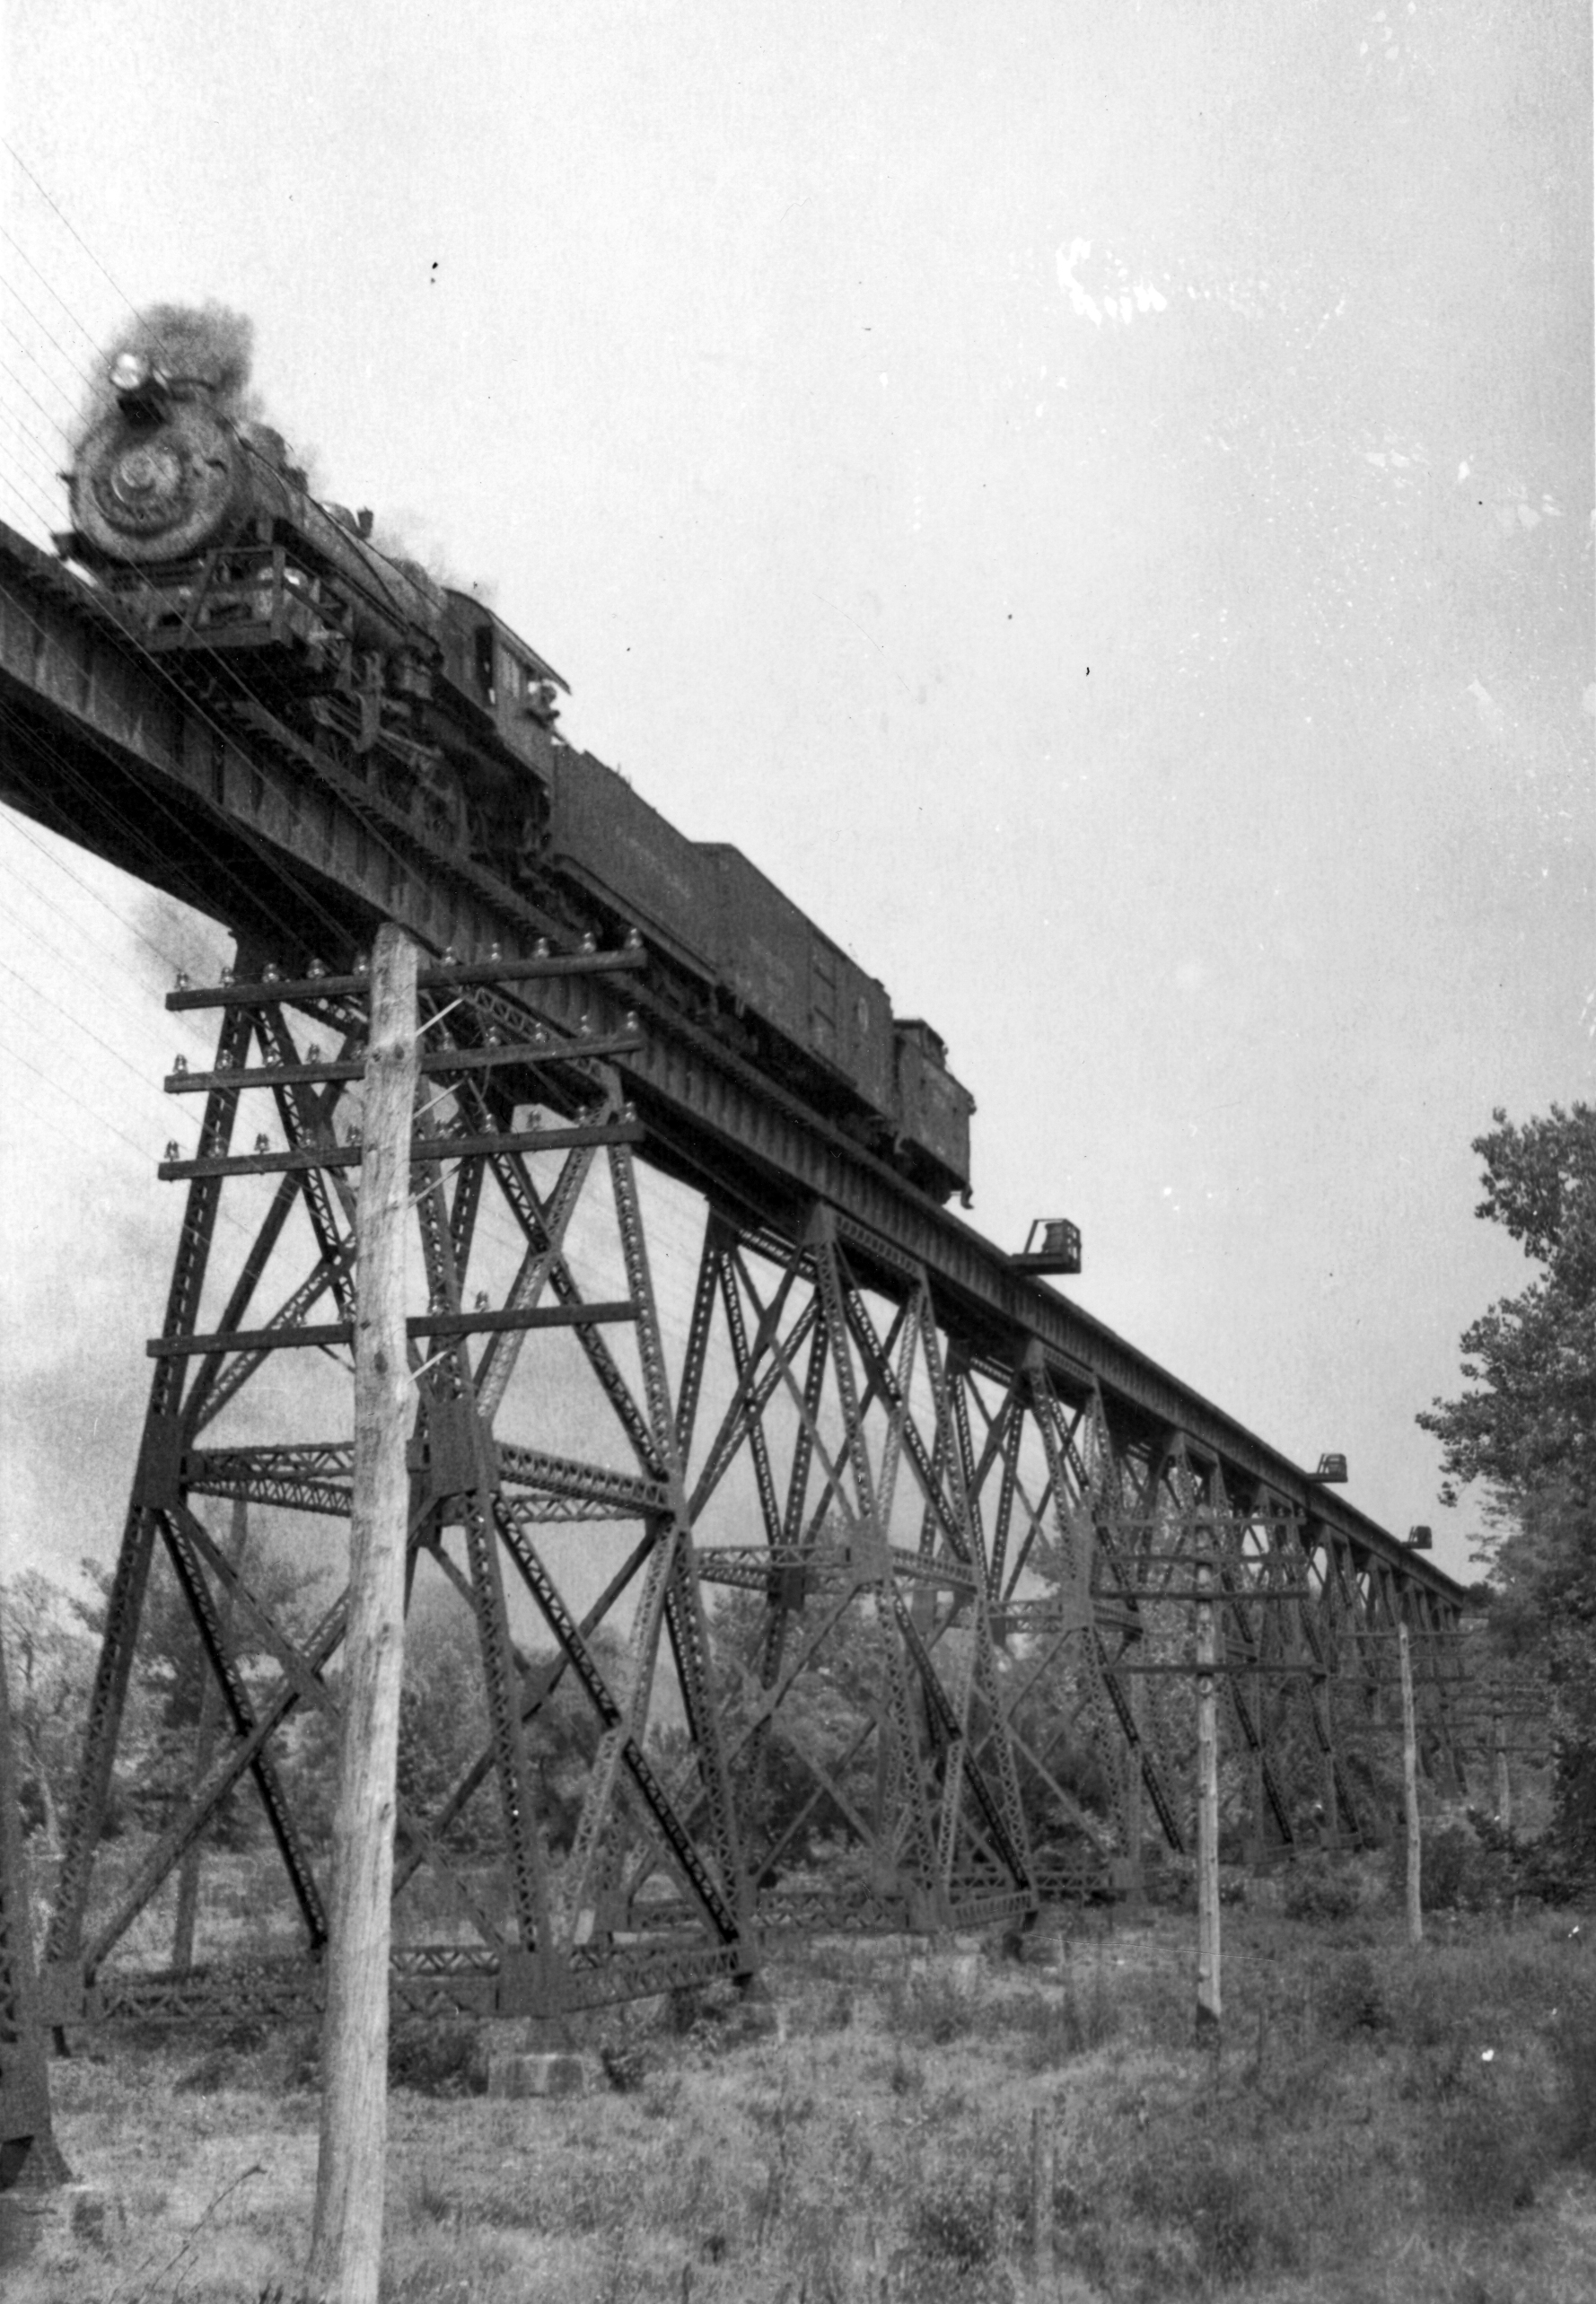 Black and white image of a steam-powered locomotive operated by the Pennsylvania Railroad on the elevated Octoraro Bridge near Oxford, Pennsylvania